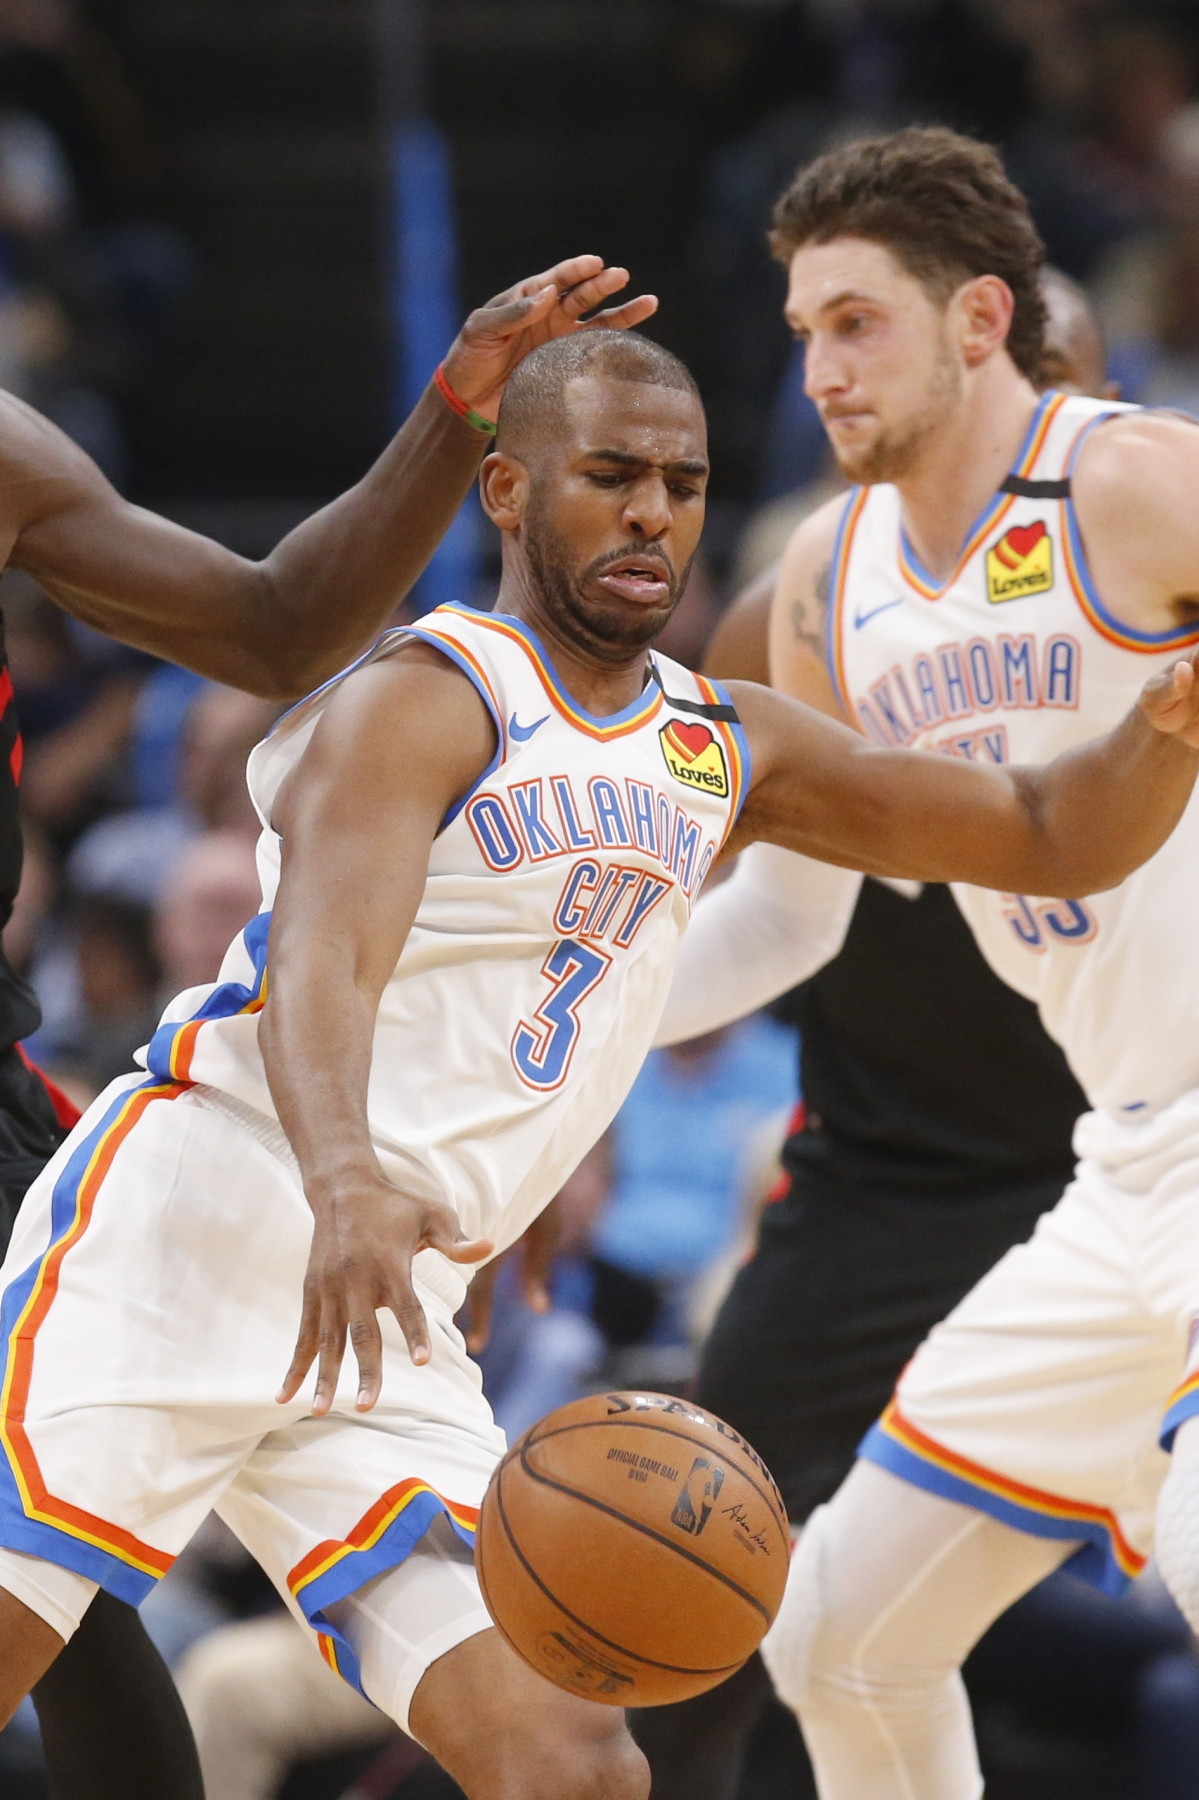 Oklahoma City Thunder guard Chris Paul (3) drives past Toronto Raptors forward Pascal Siakam (43) during the first half of an NBA basketball game Wednesday, Jan. 15, 2020, in Oklahoma City.